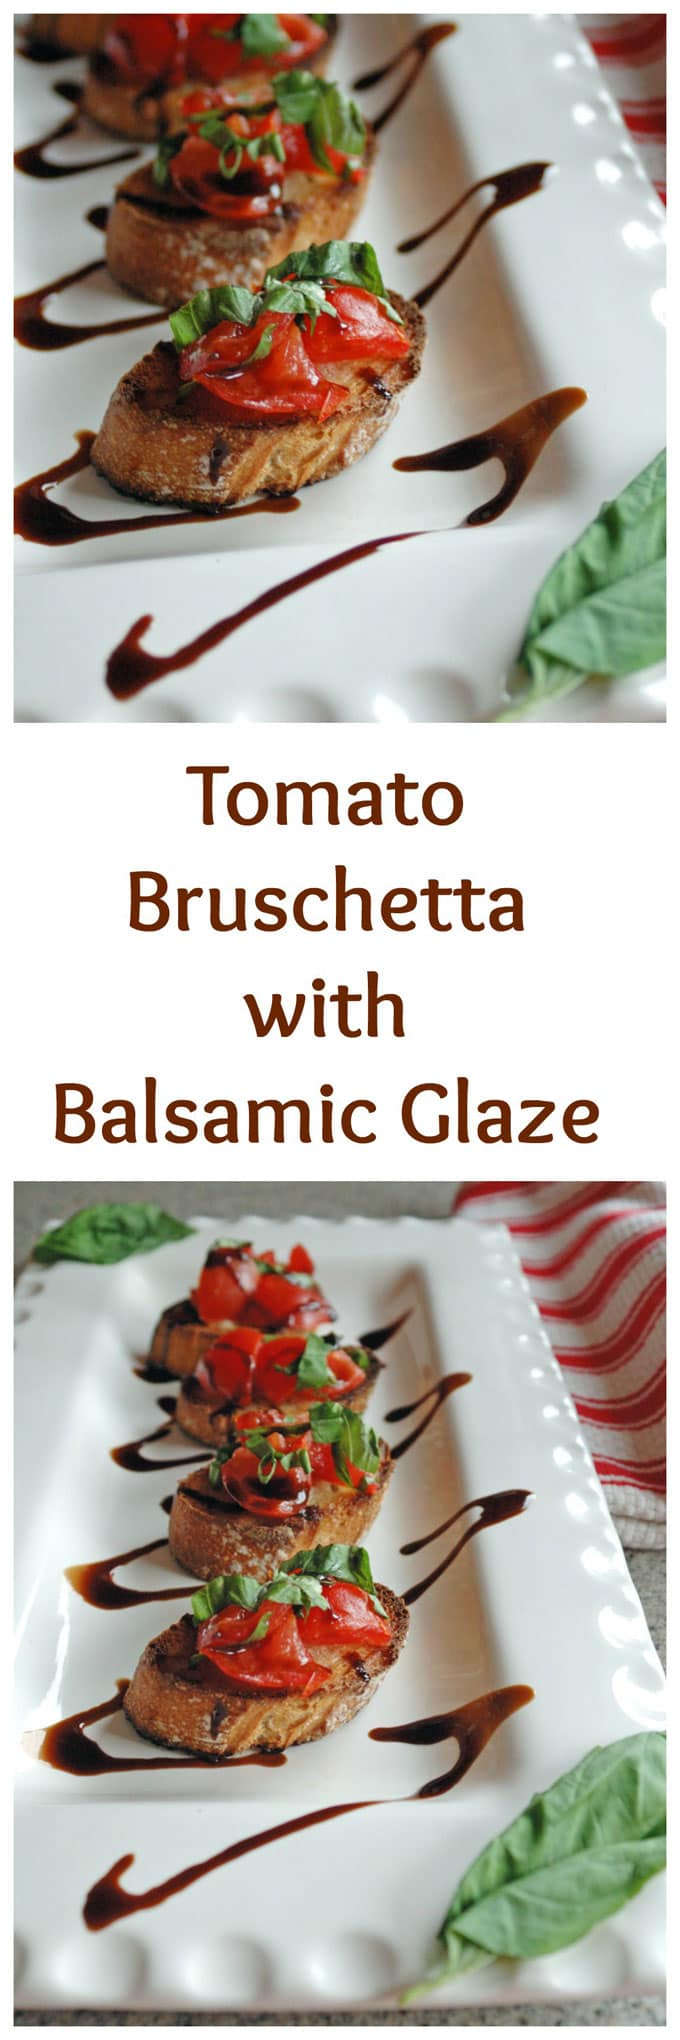 Tomato Bruschetta with Balsamic Glaze is so good!